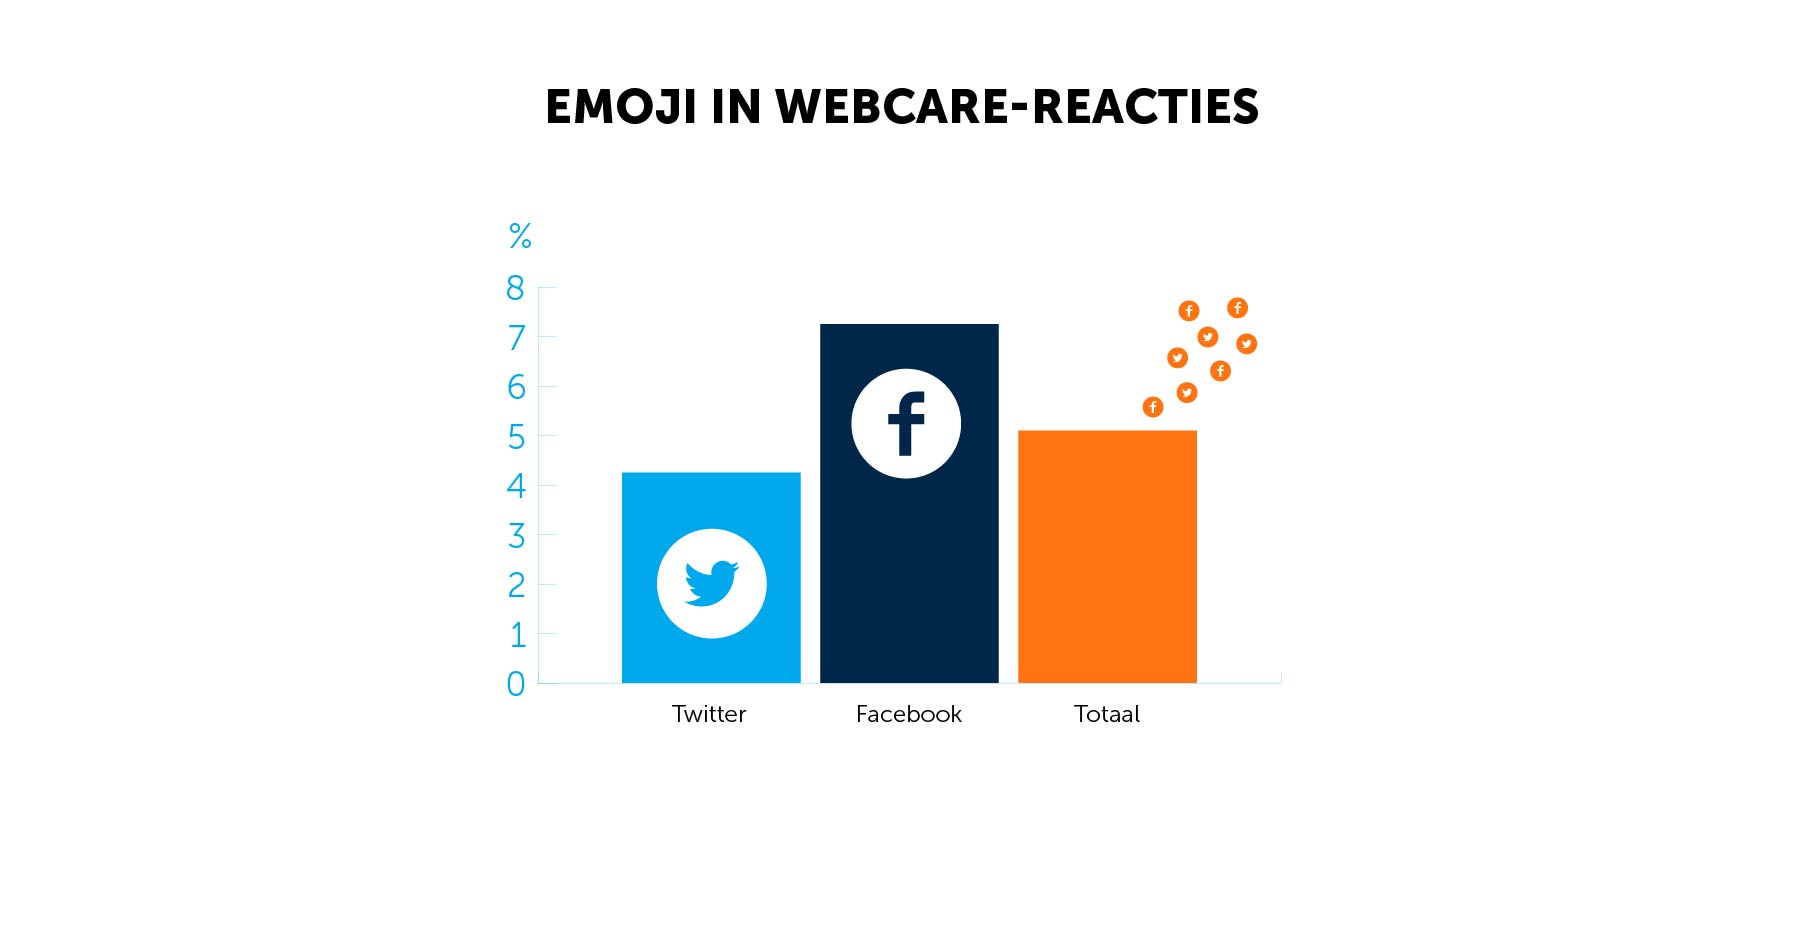 emoji in webcare